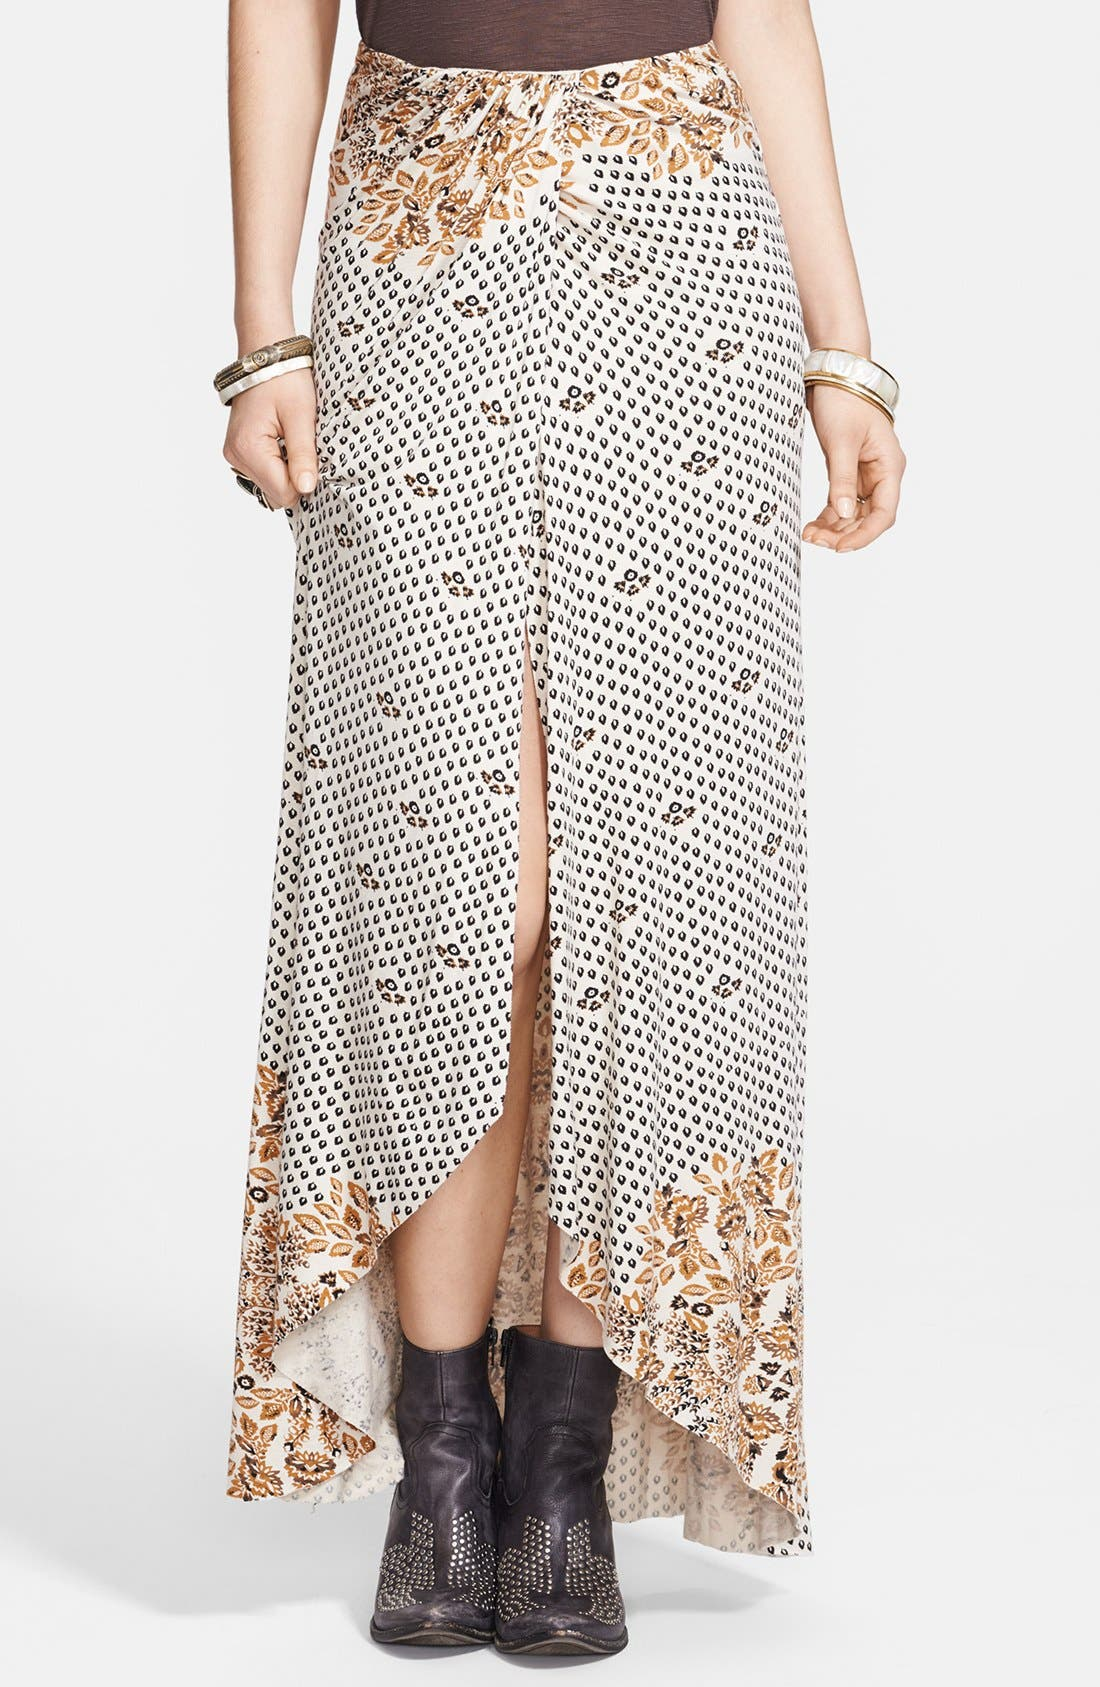 Alternate Image 1 Selected - Free People Print Draped Knit Column Skirt